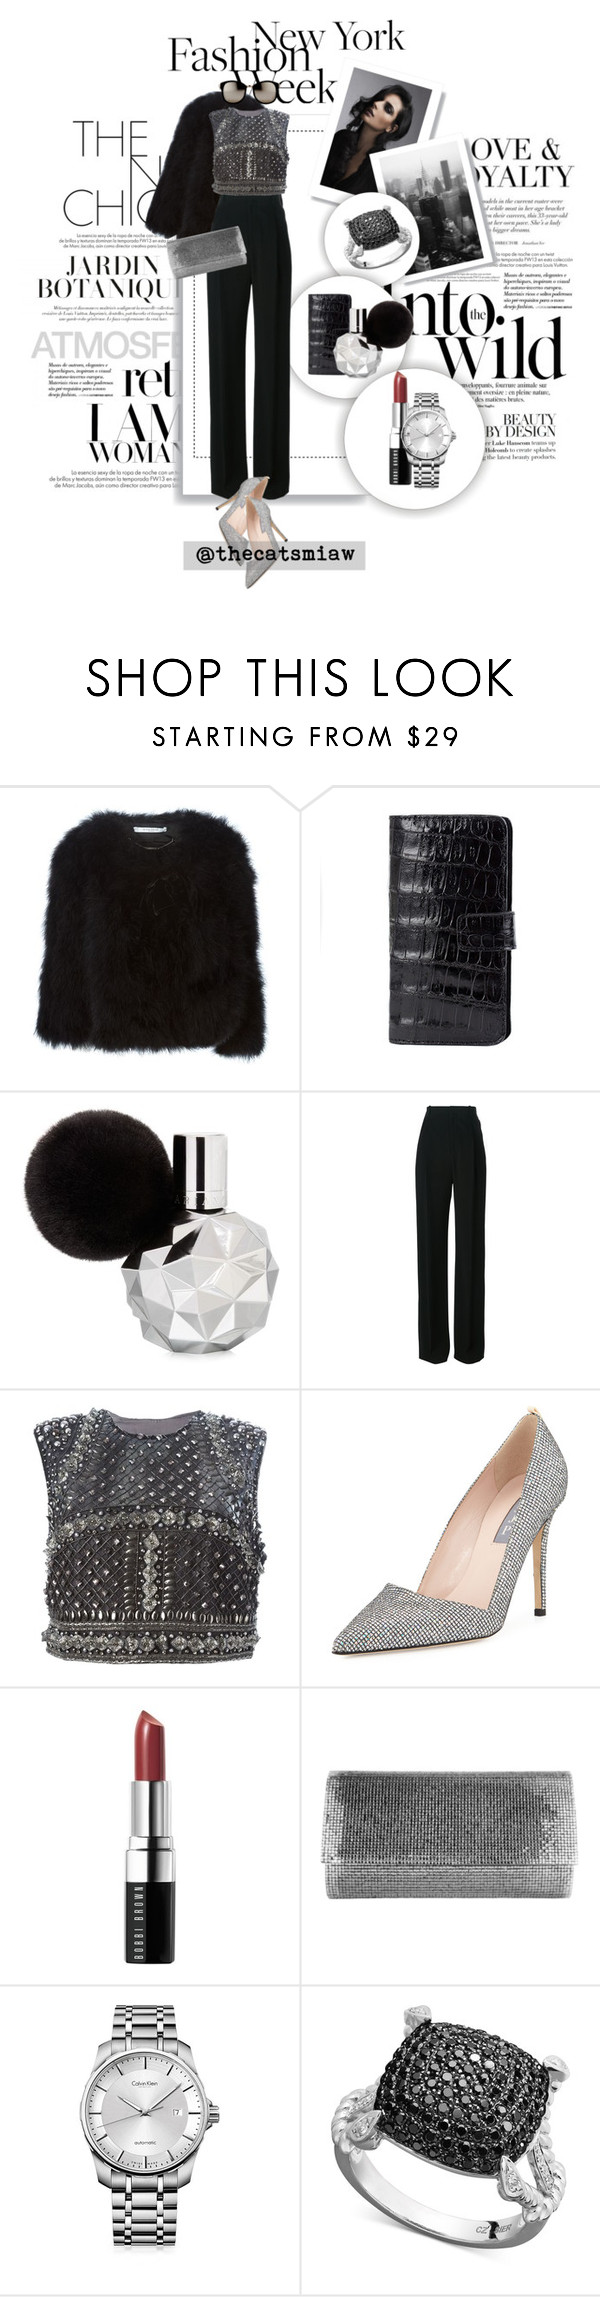 """Pack for NYFW! - Embellished"" by belleforcible ❤ liked on Polyvore featuring Louis Vuitton, Anja, Givenchy, N+J Beverly Hills, Alberta Ferretti, SJP, Bobbi Brown Cosmetics, Judith Leiber, Calvin Klein and Linda Farrow"